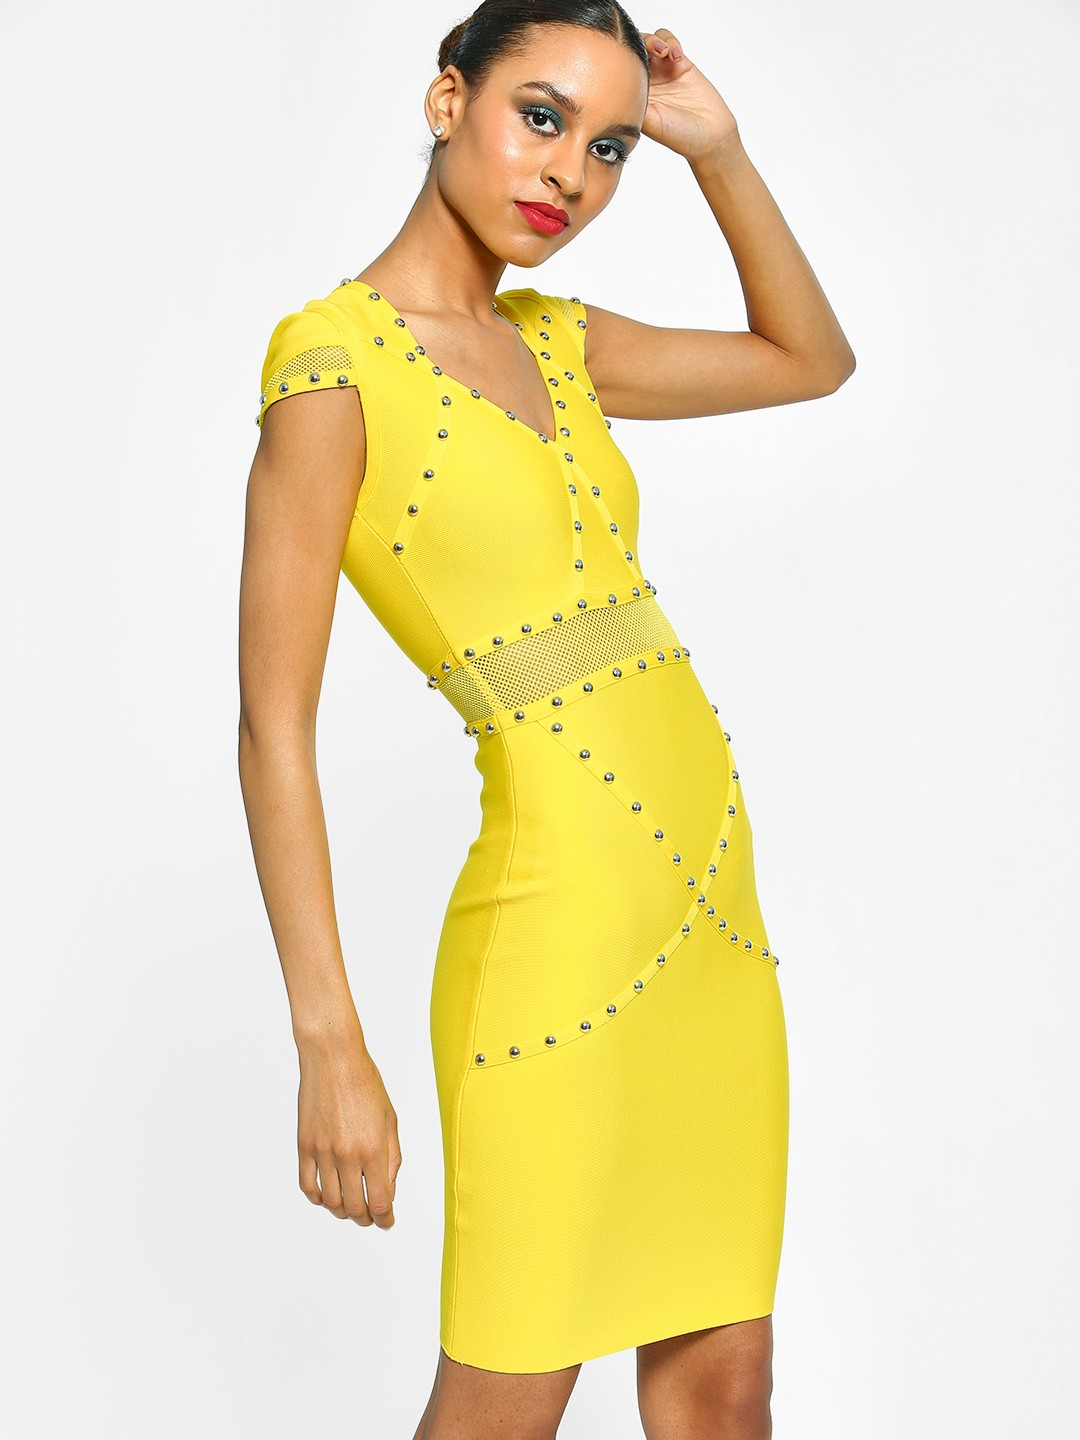 Realty, Lajoly & Co Yellow Studded Bandage Bodycon Dress 1